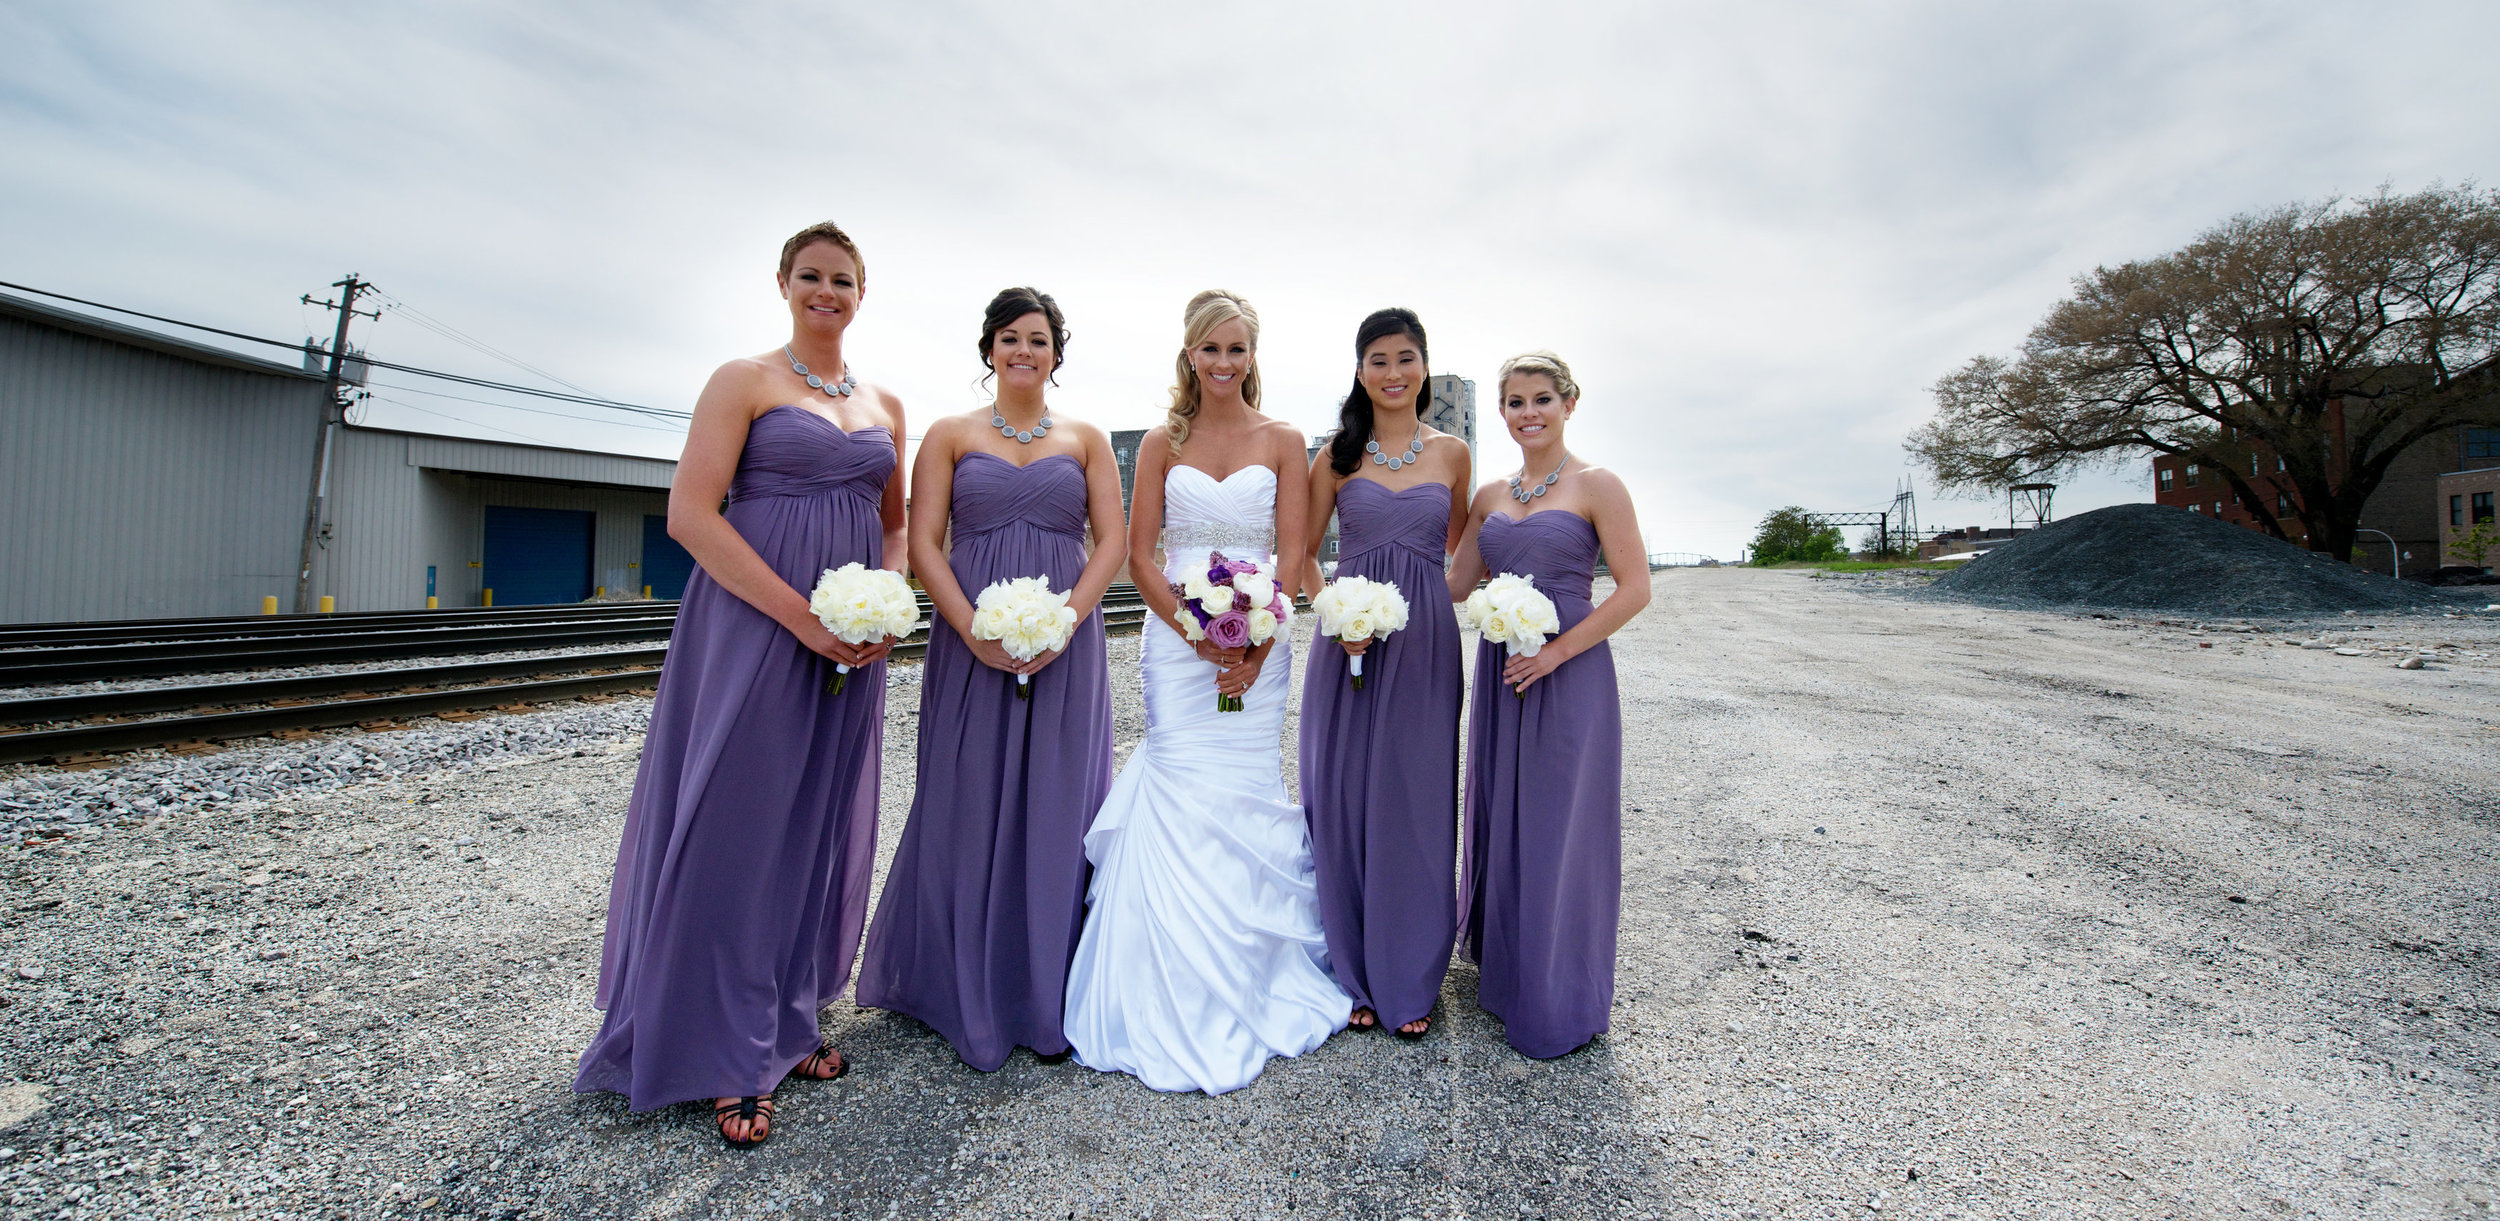 Kenna Jason Wedding-Posed Bridal Party-0071.jpg